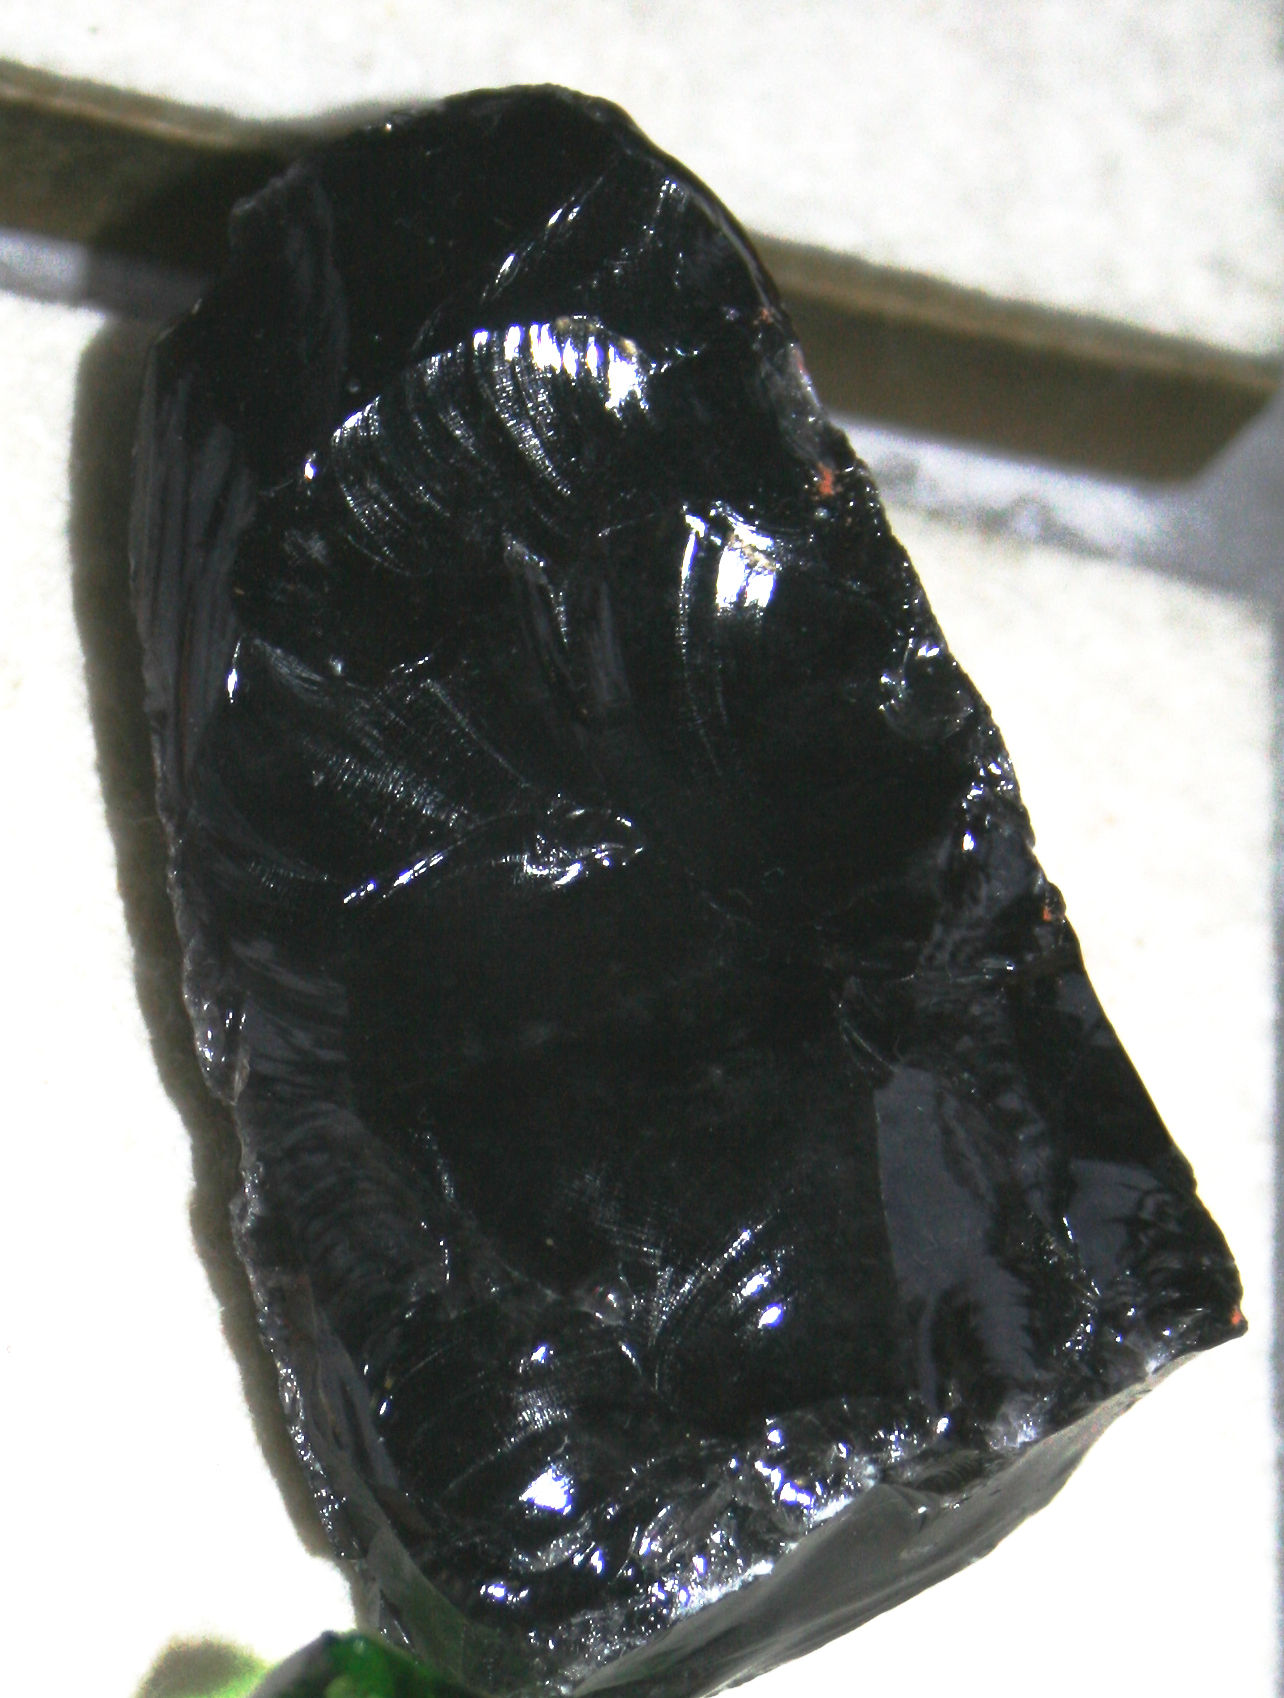 Shiny Black Rock http://www.steampunkfamily.com/2010/08/axe-and-fire/